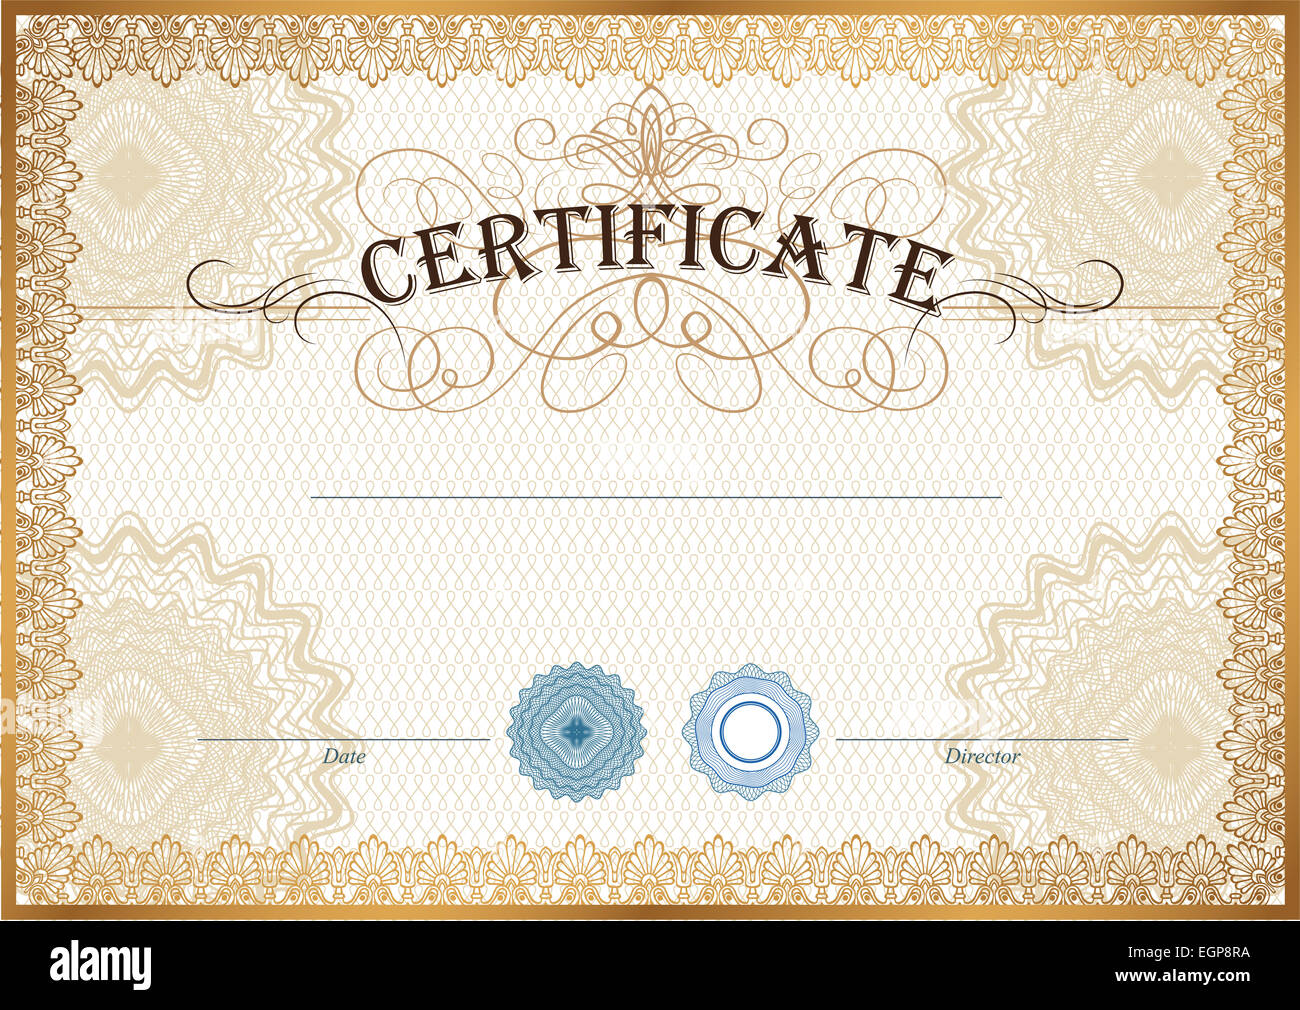 Vector Ornate Certificate Template Stockfotos & Vector Ornate ...